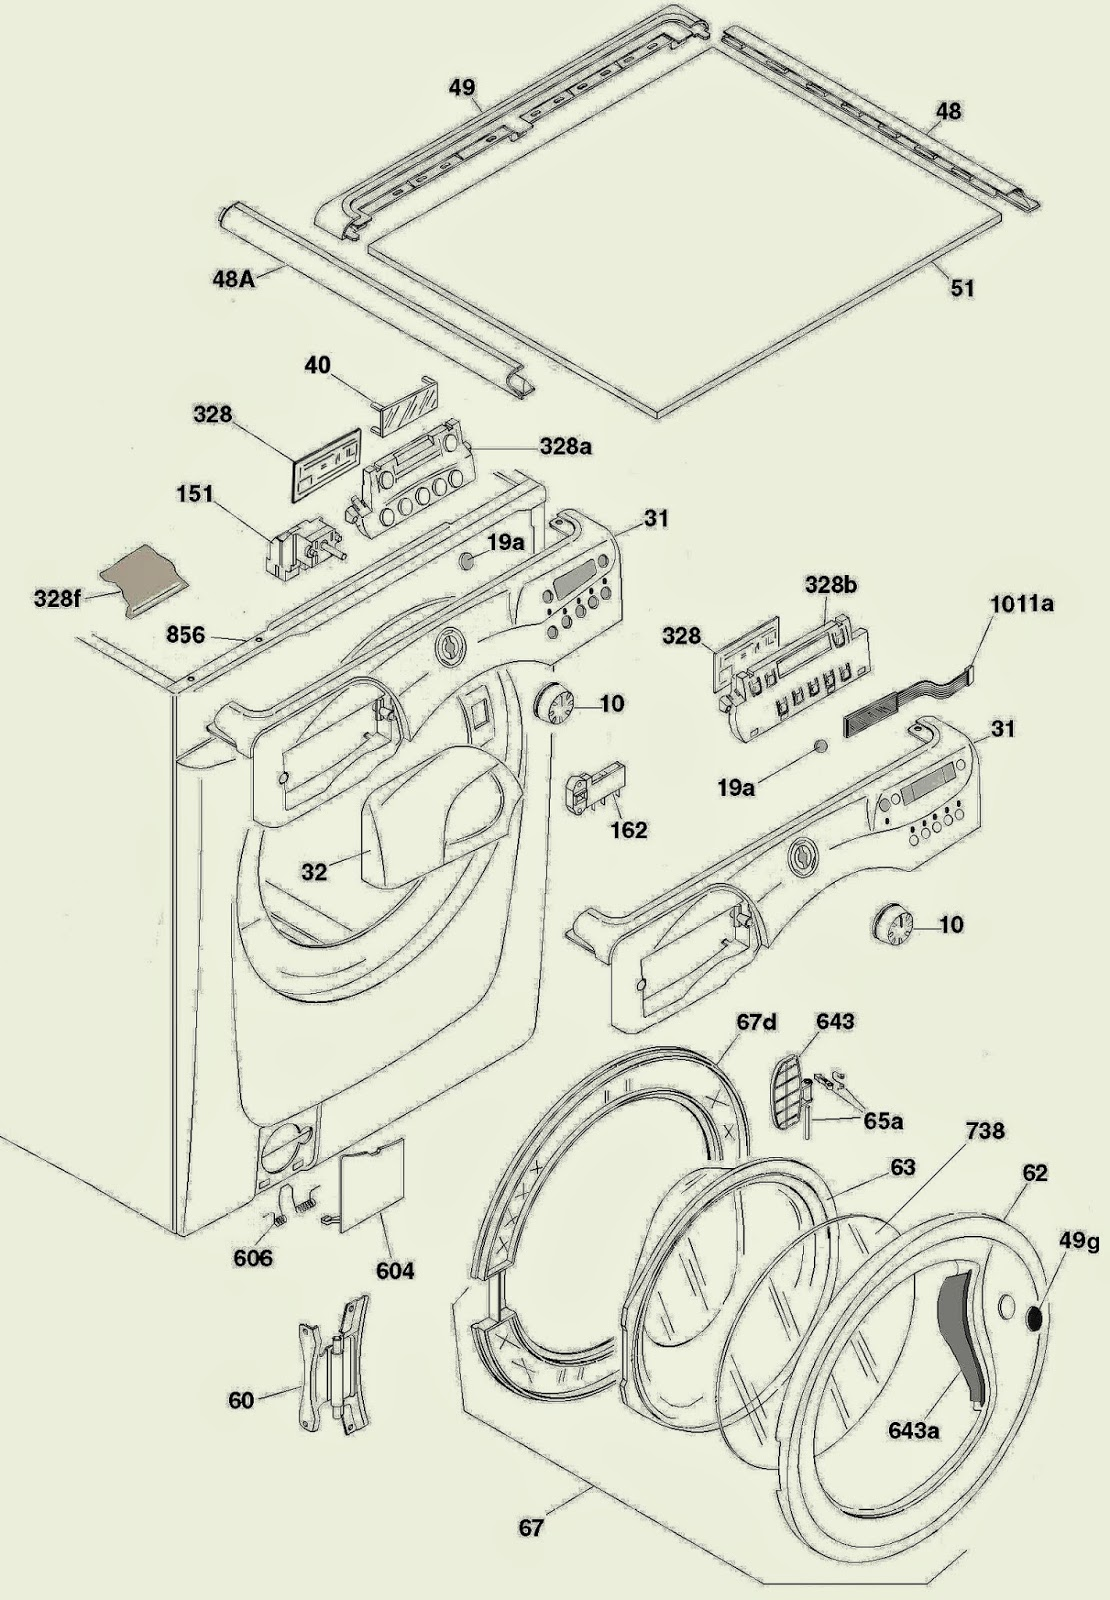 Hoover Vhd 812 Washing Machine Washer Dryer Disassemble Parts Wiring Diagram